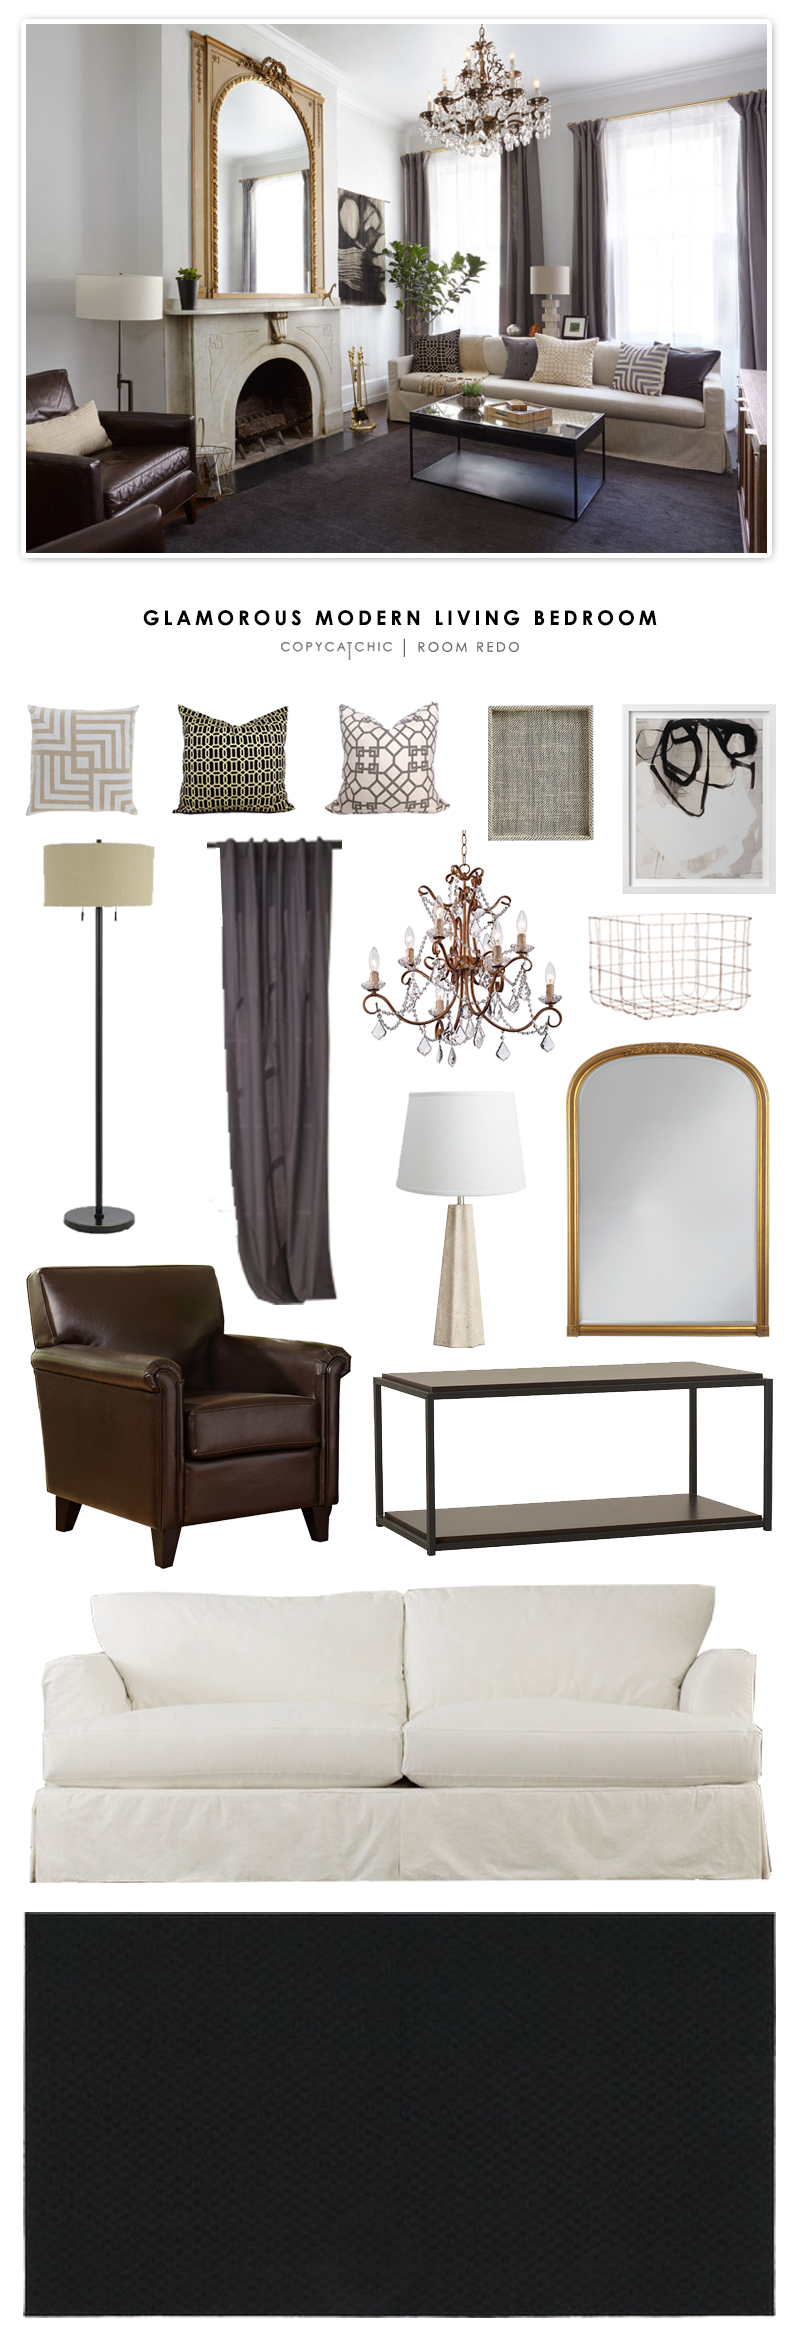 glamorous pier one living room | Copy Cat Chic Room Redo | Glamorous Modern Living Room ...